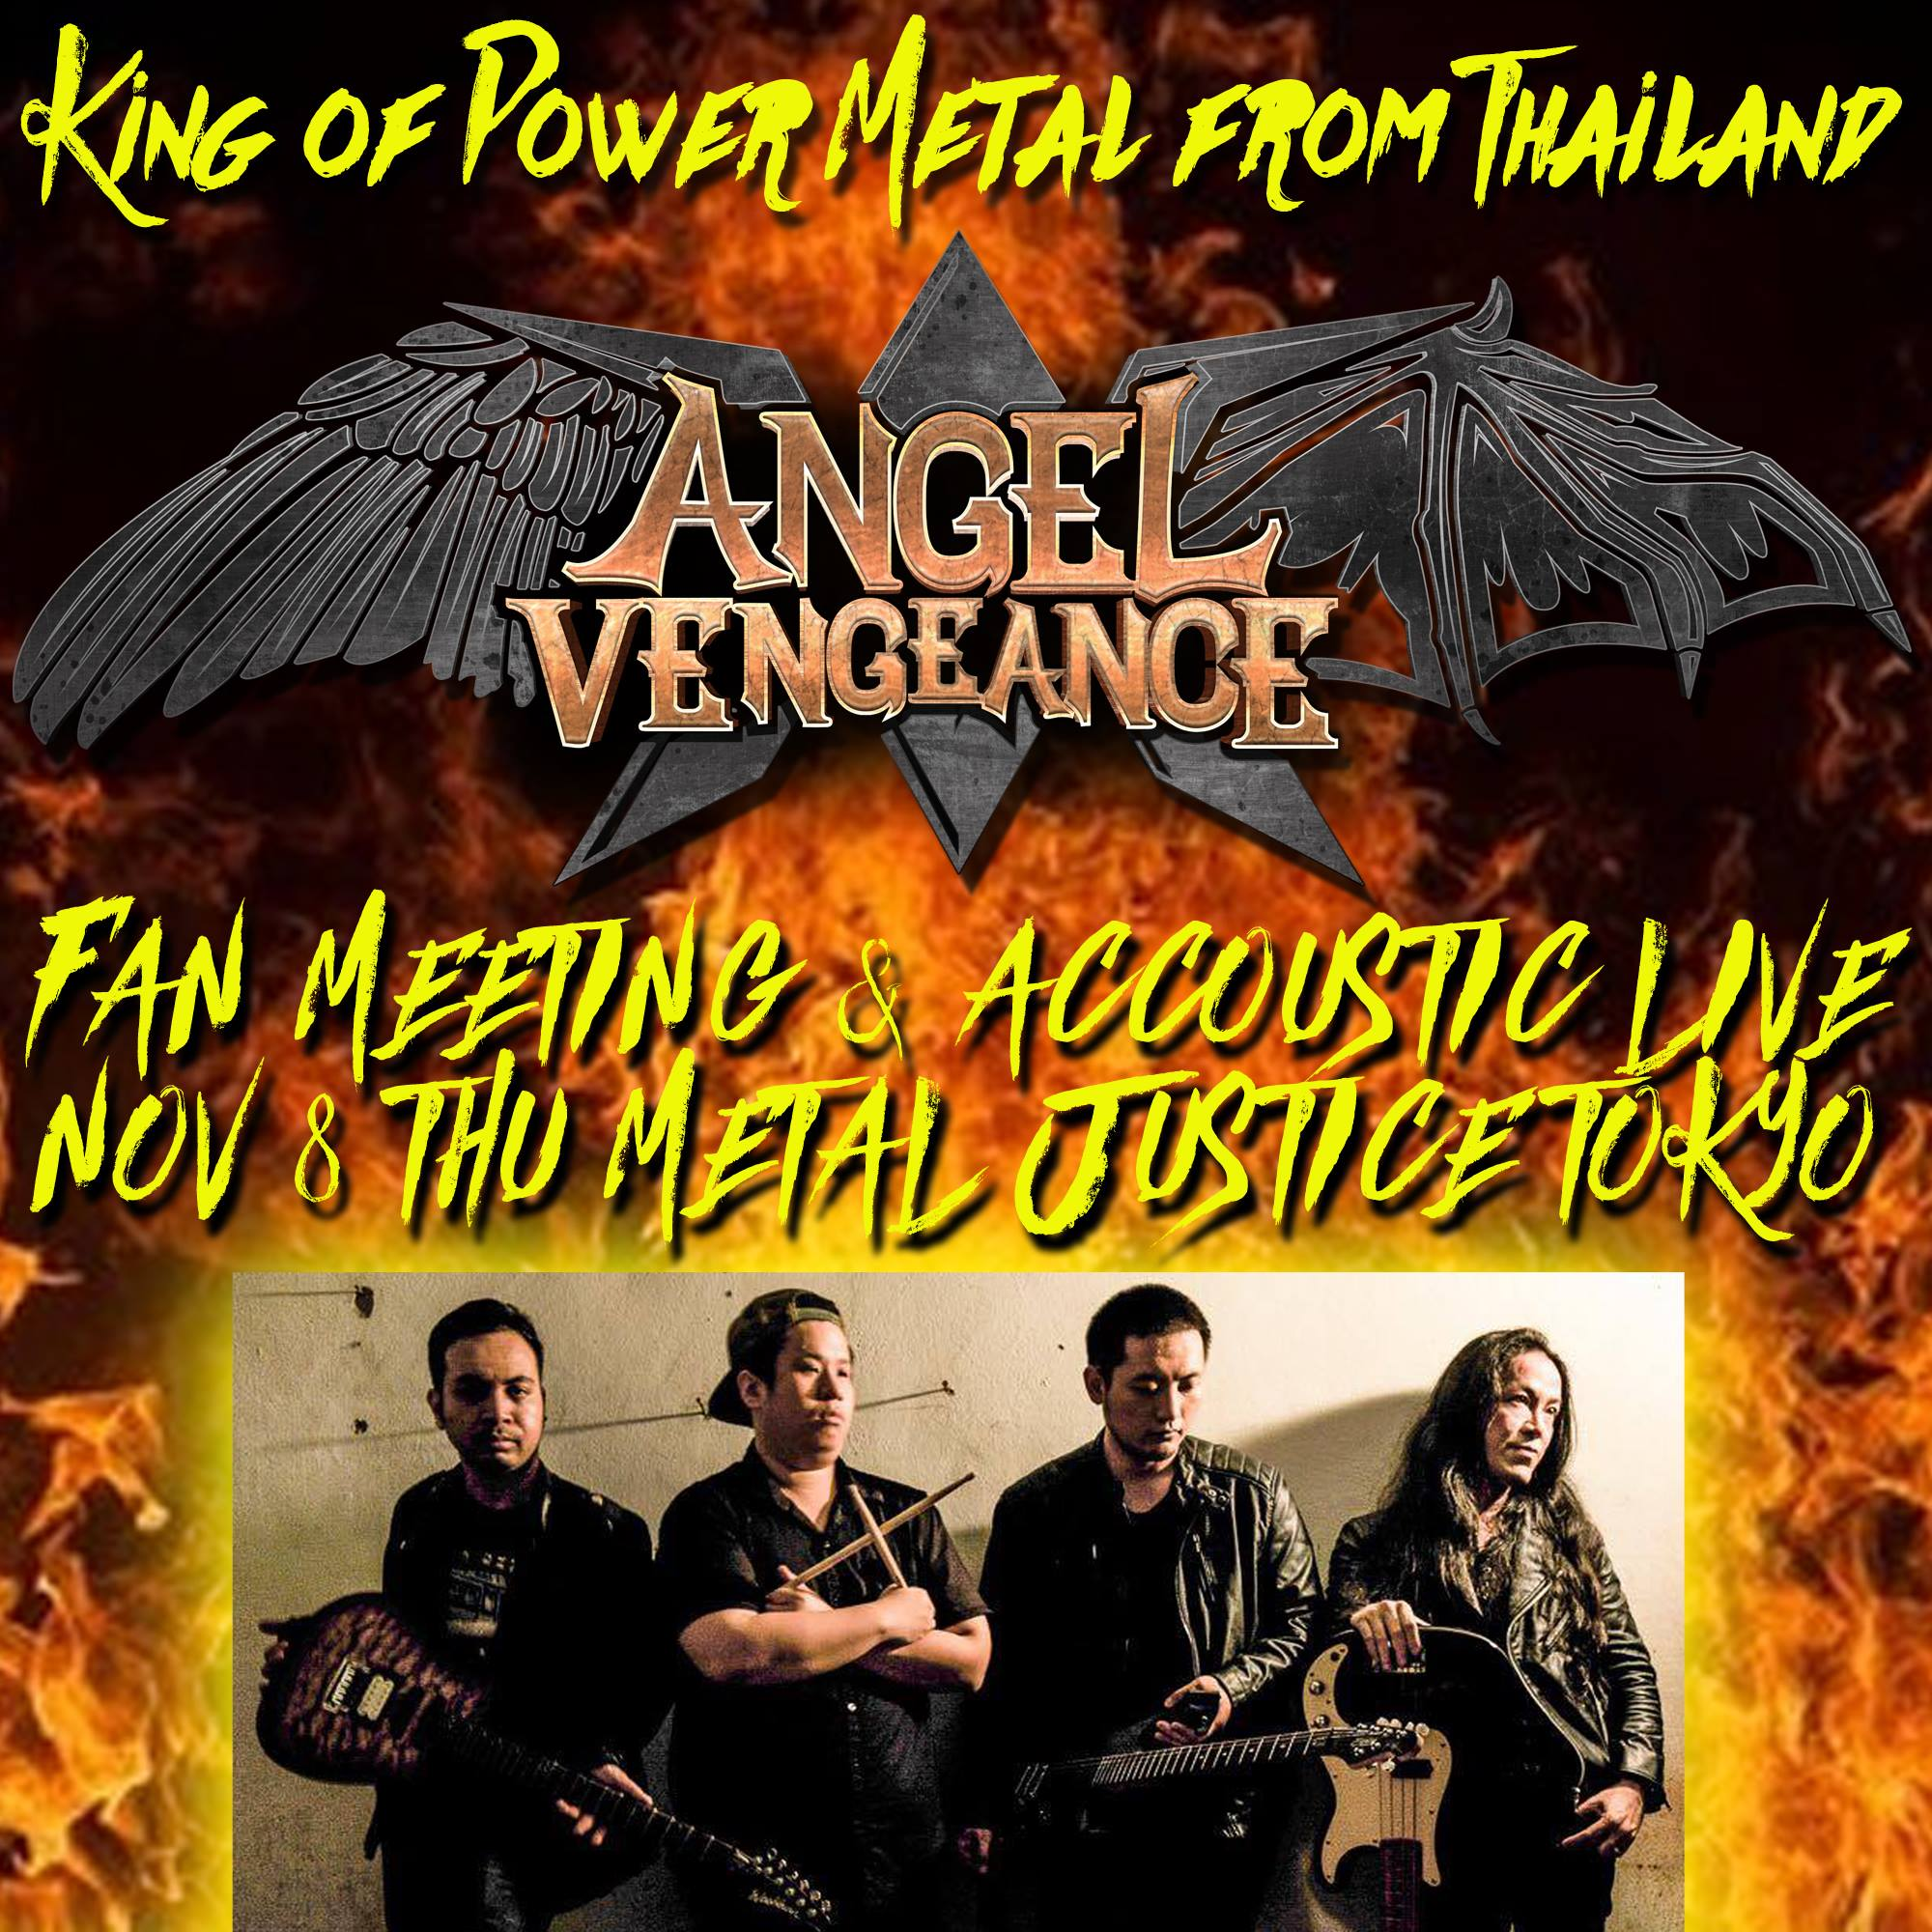 ANGEL VENGEANCE Fan Meeting & Acoustic Live